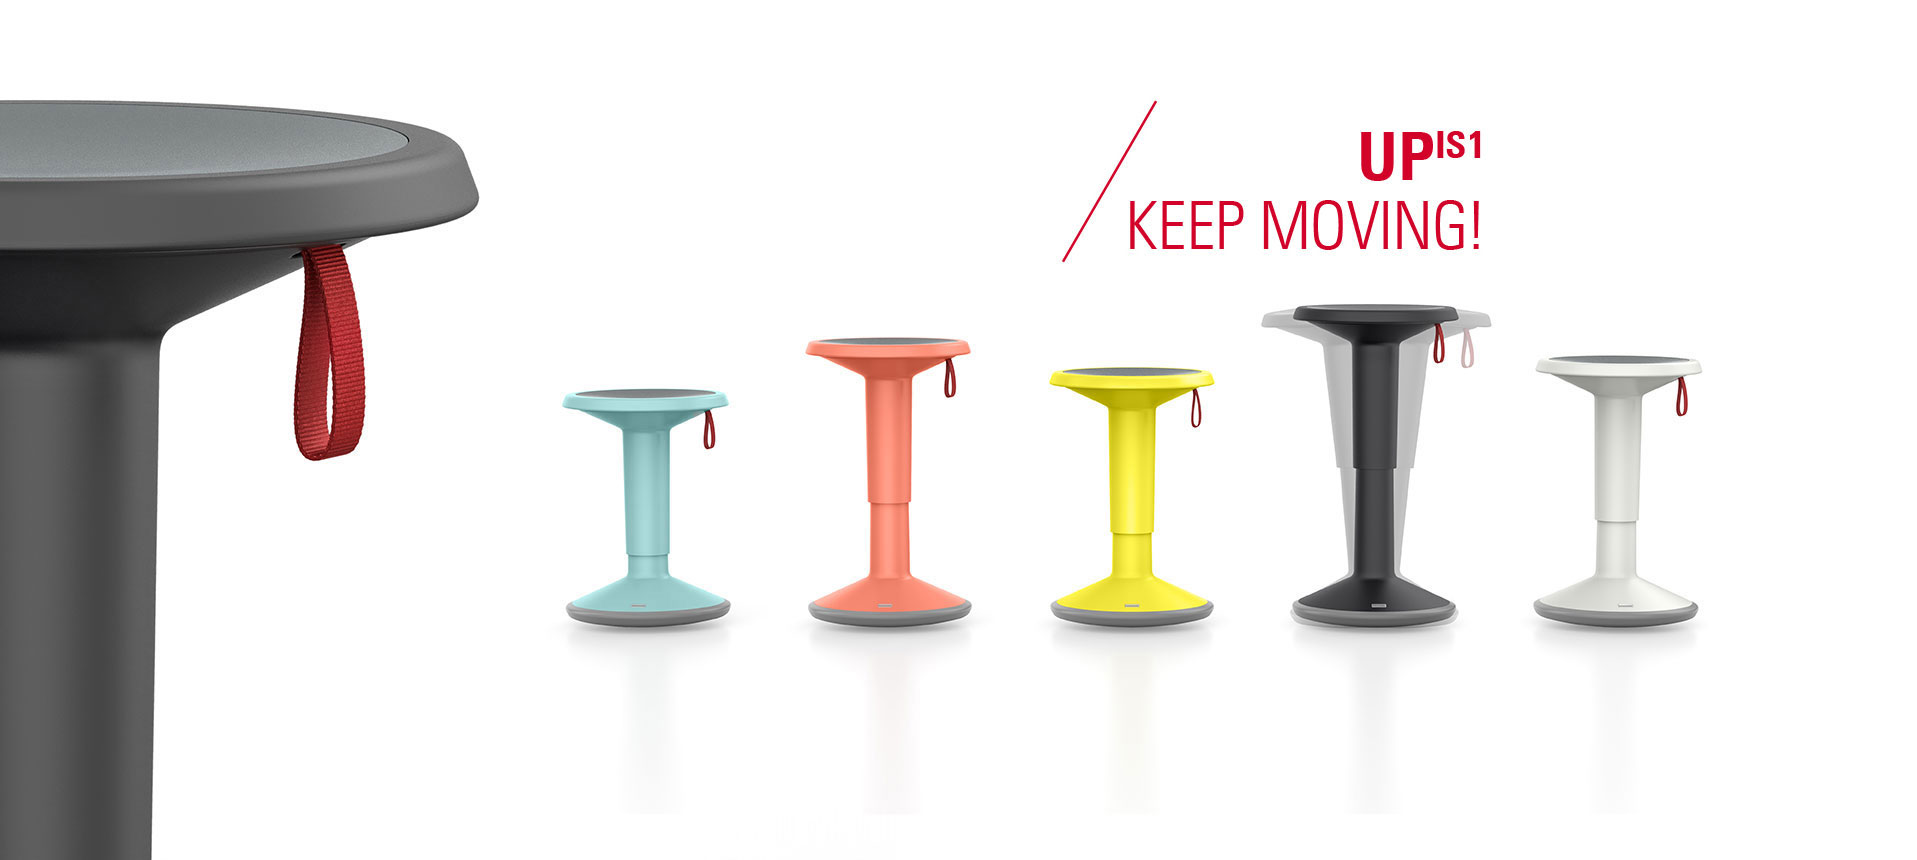 UPis1 - KEEP MOVING!